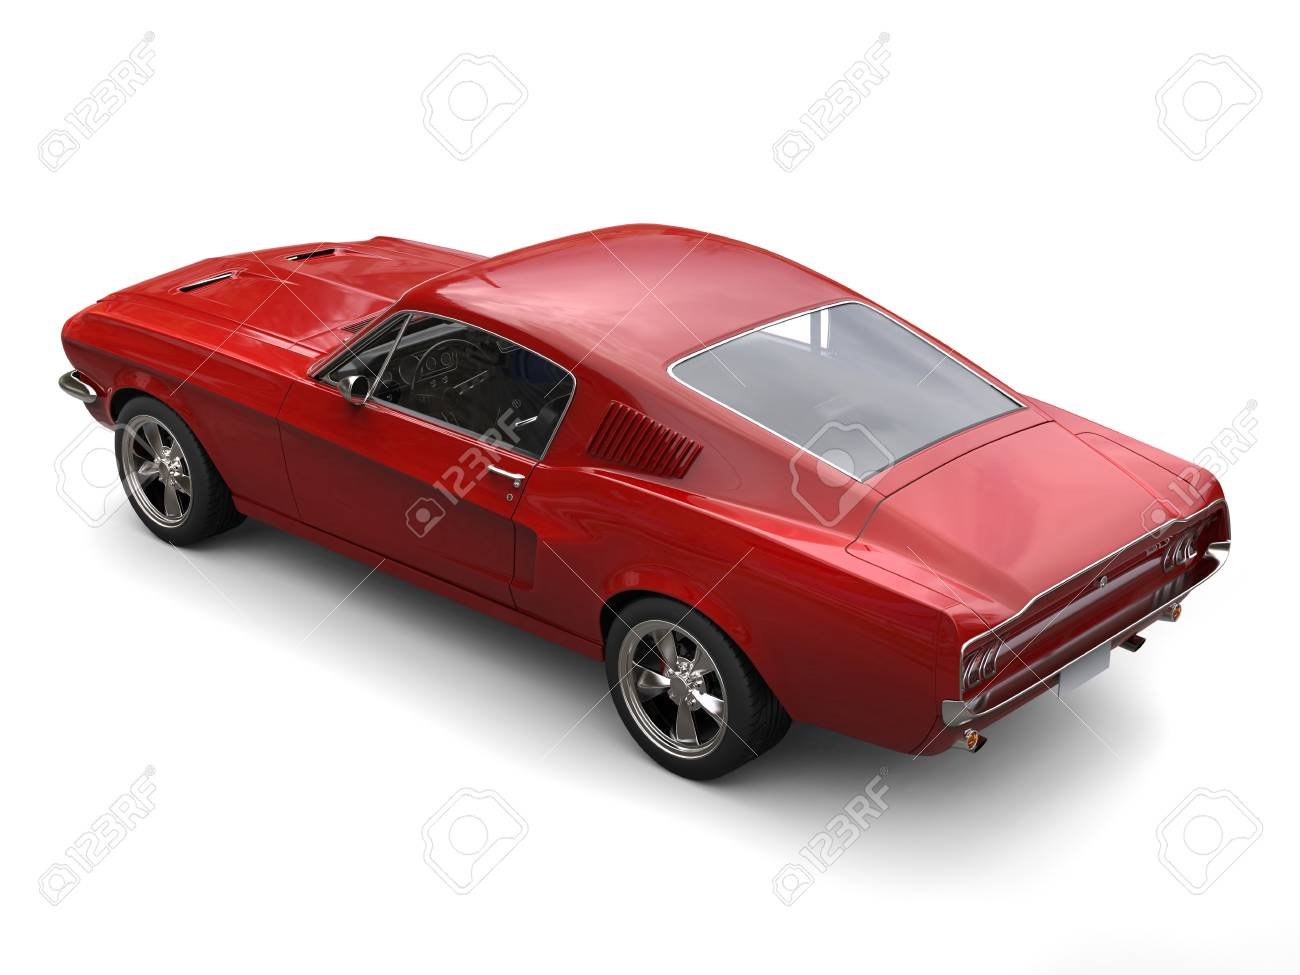 Crimson Red American Vintage Muscle Car Rear Top Down View Stock